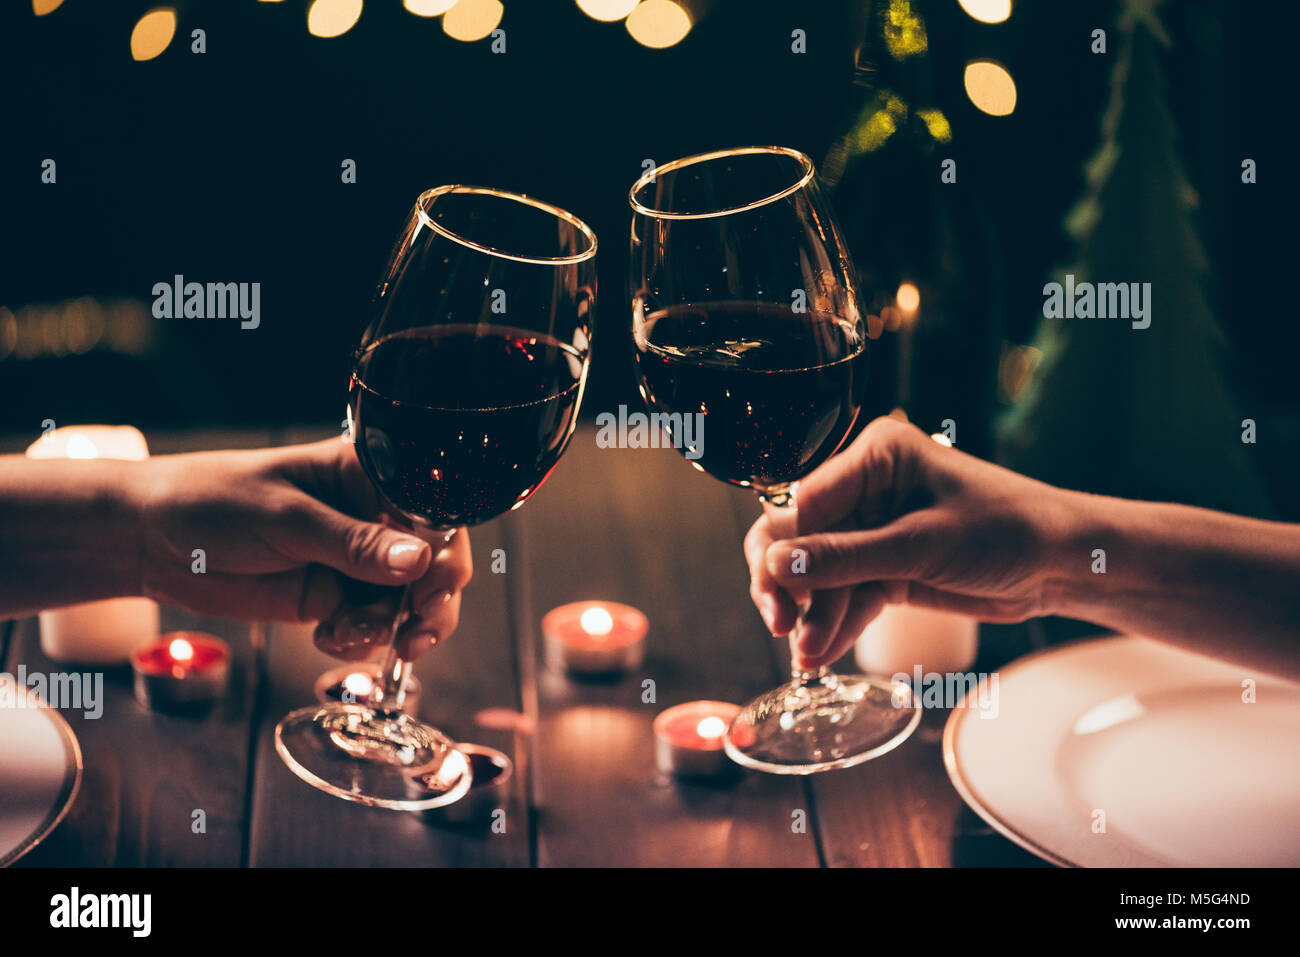 women clinking glasses over served table - Stock Image